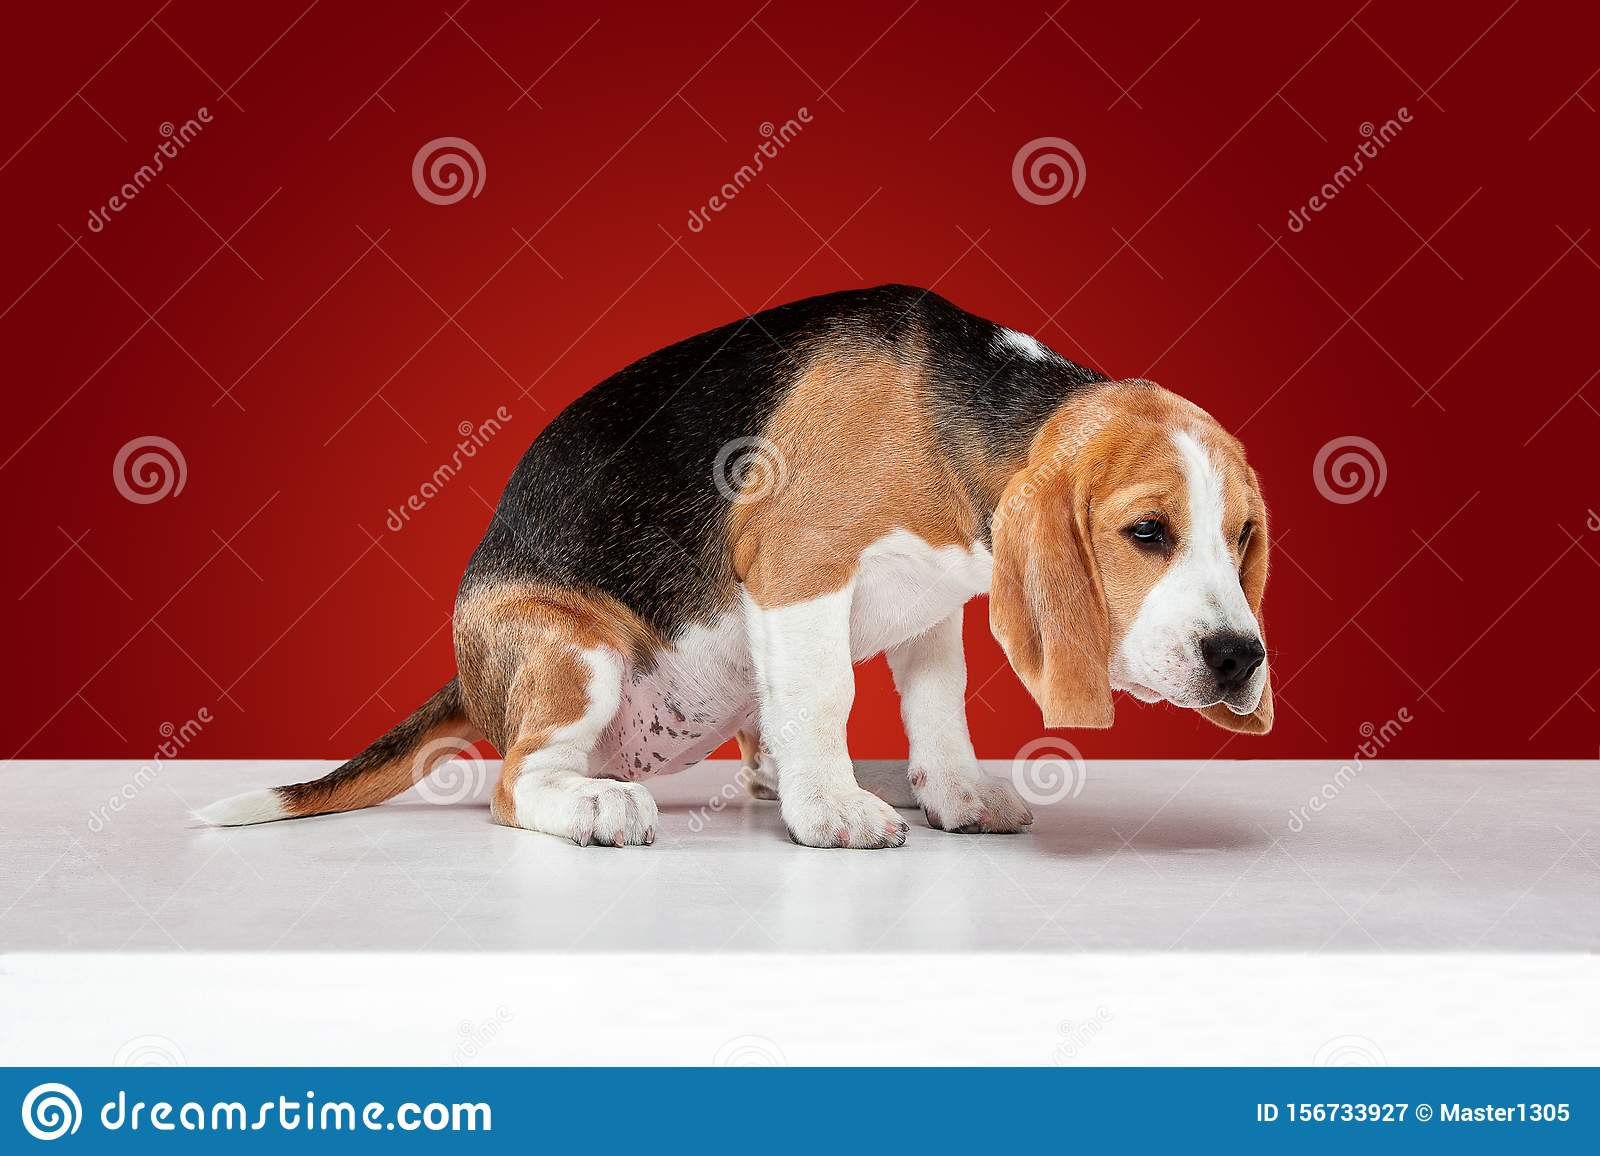 Studio Shot Of Beagle Puppy On Red Studio Background Stock Image Image Of Brown Lying 156733927